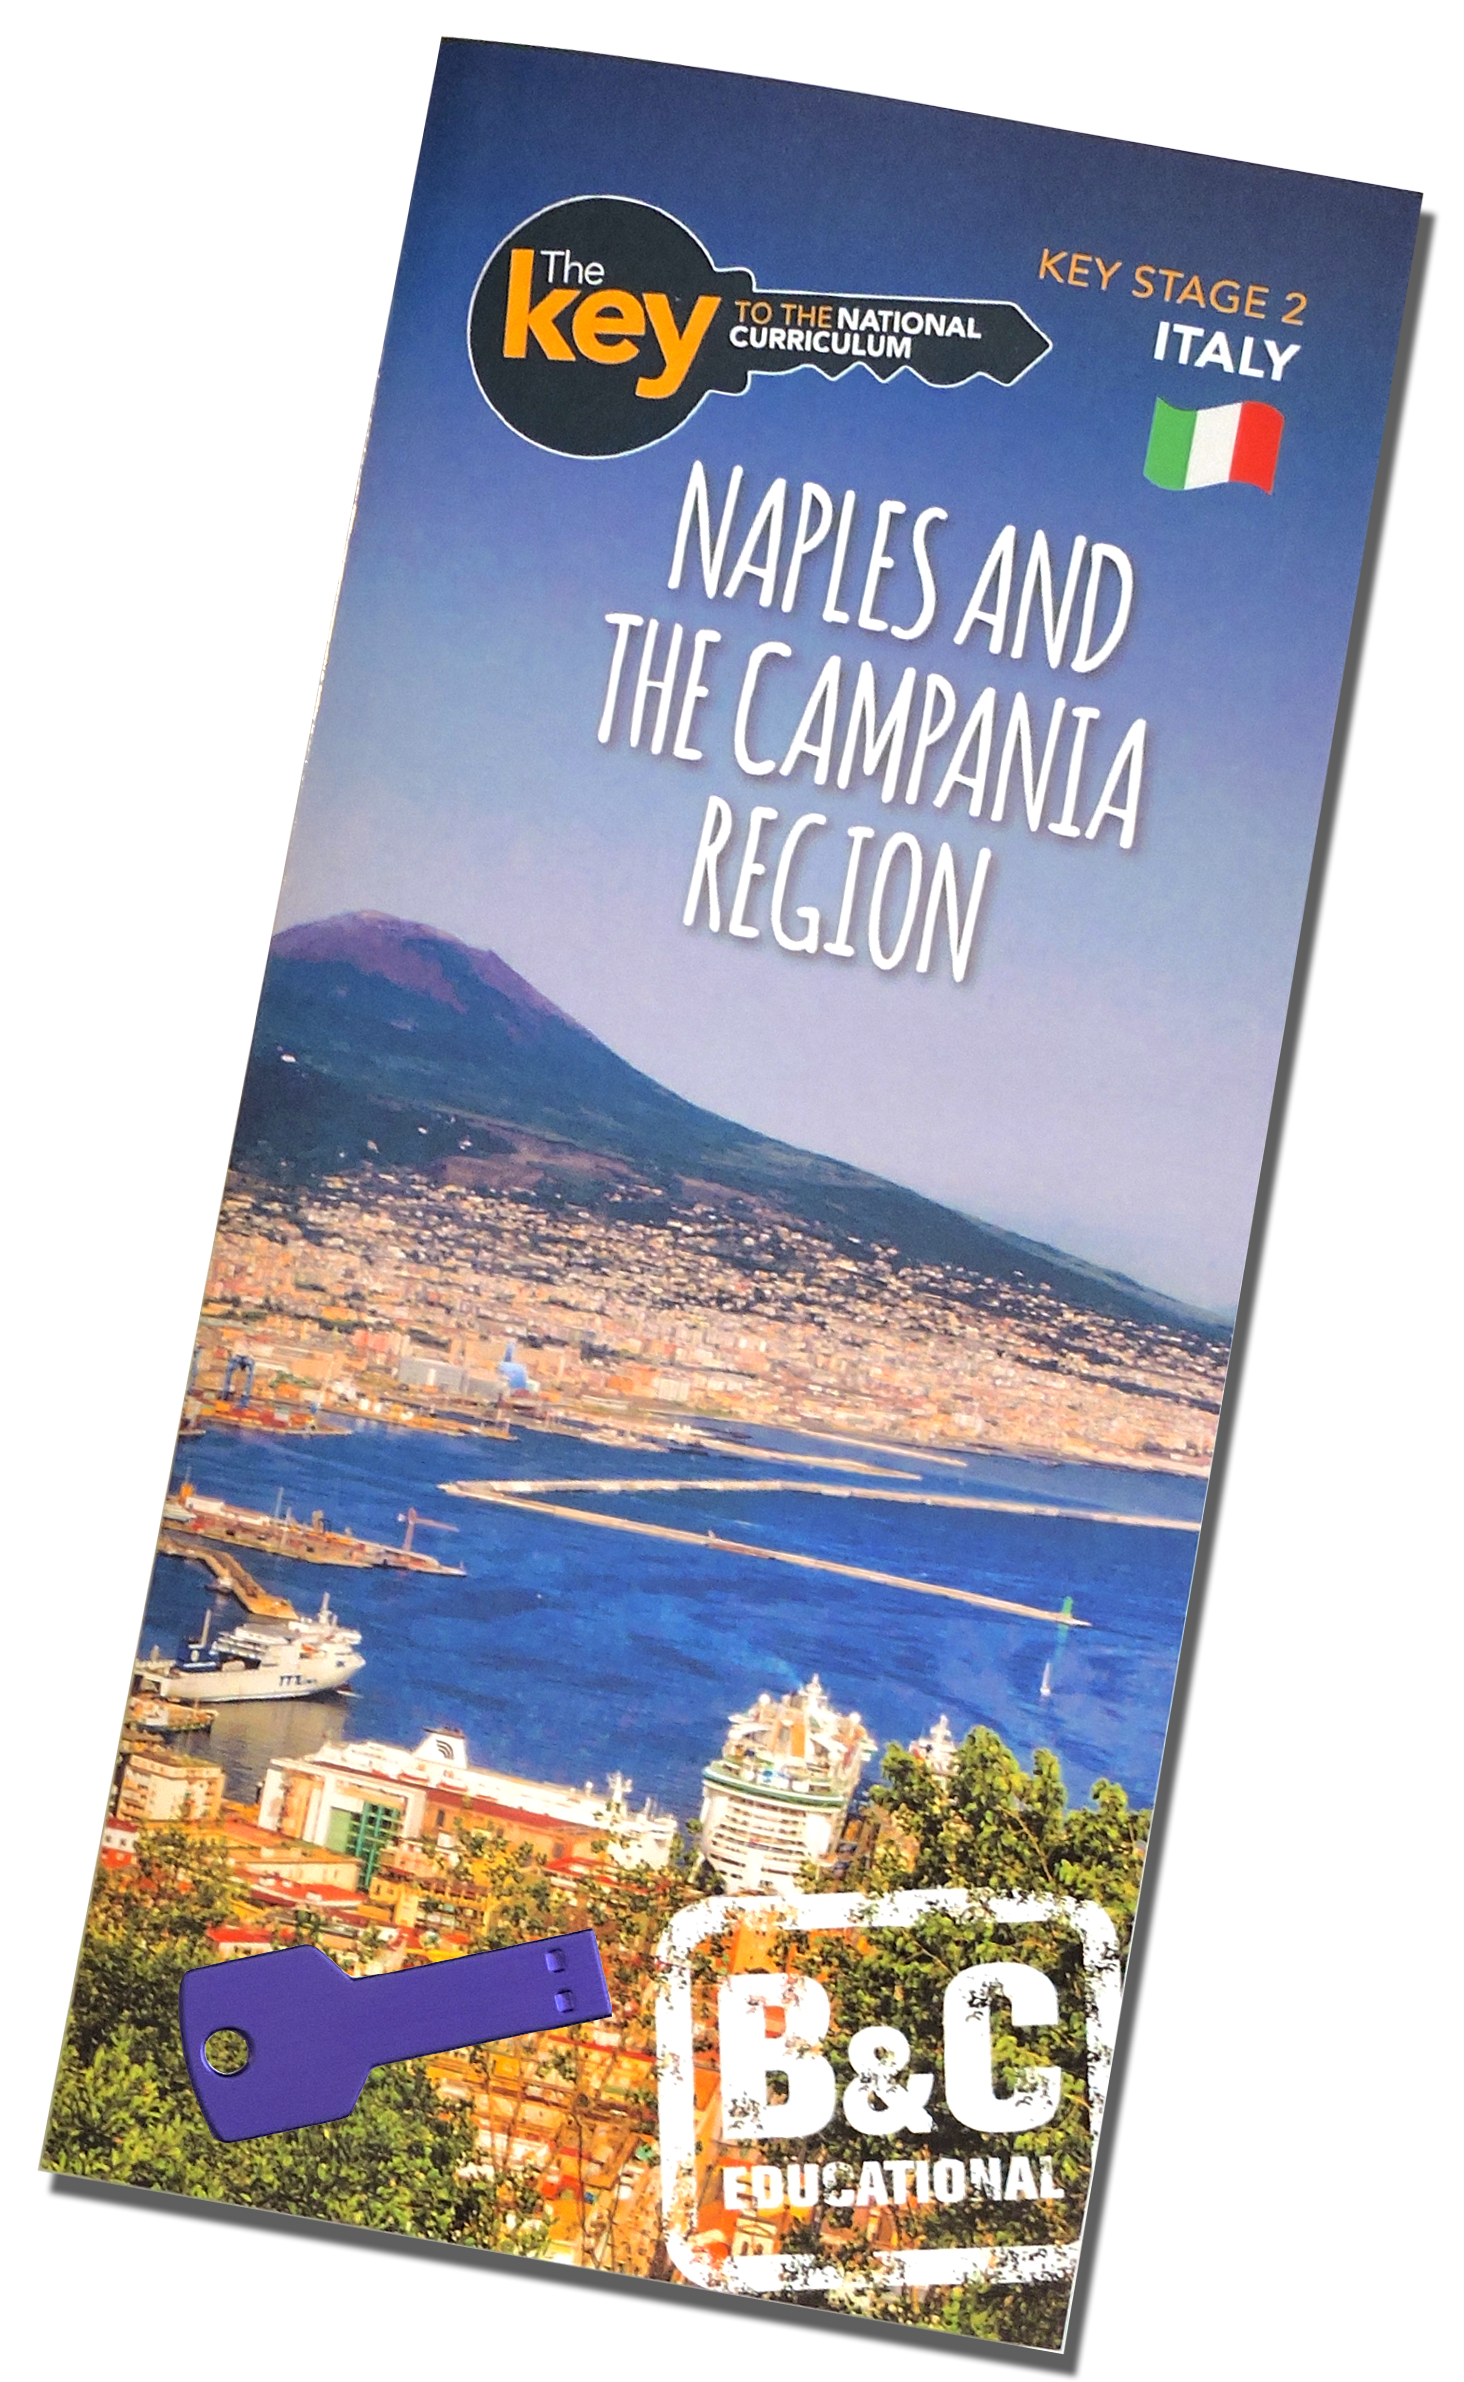 Naples and the Campania Region